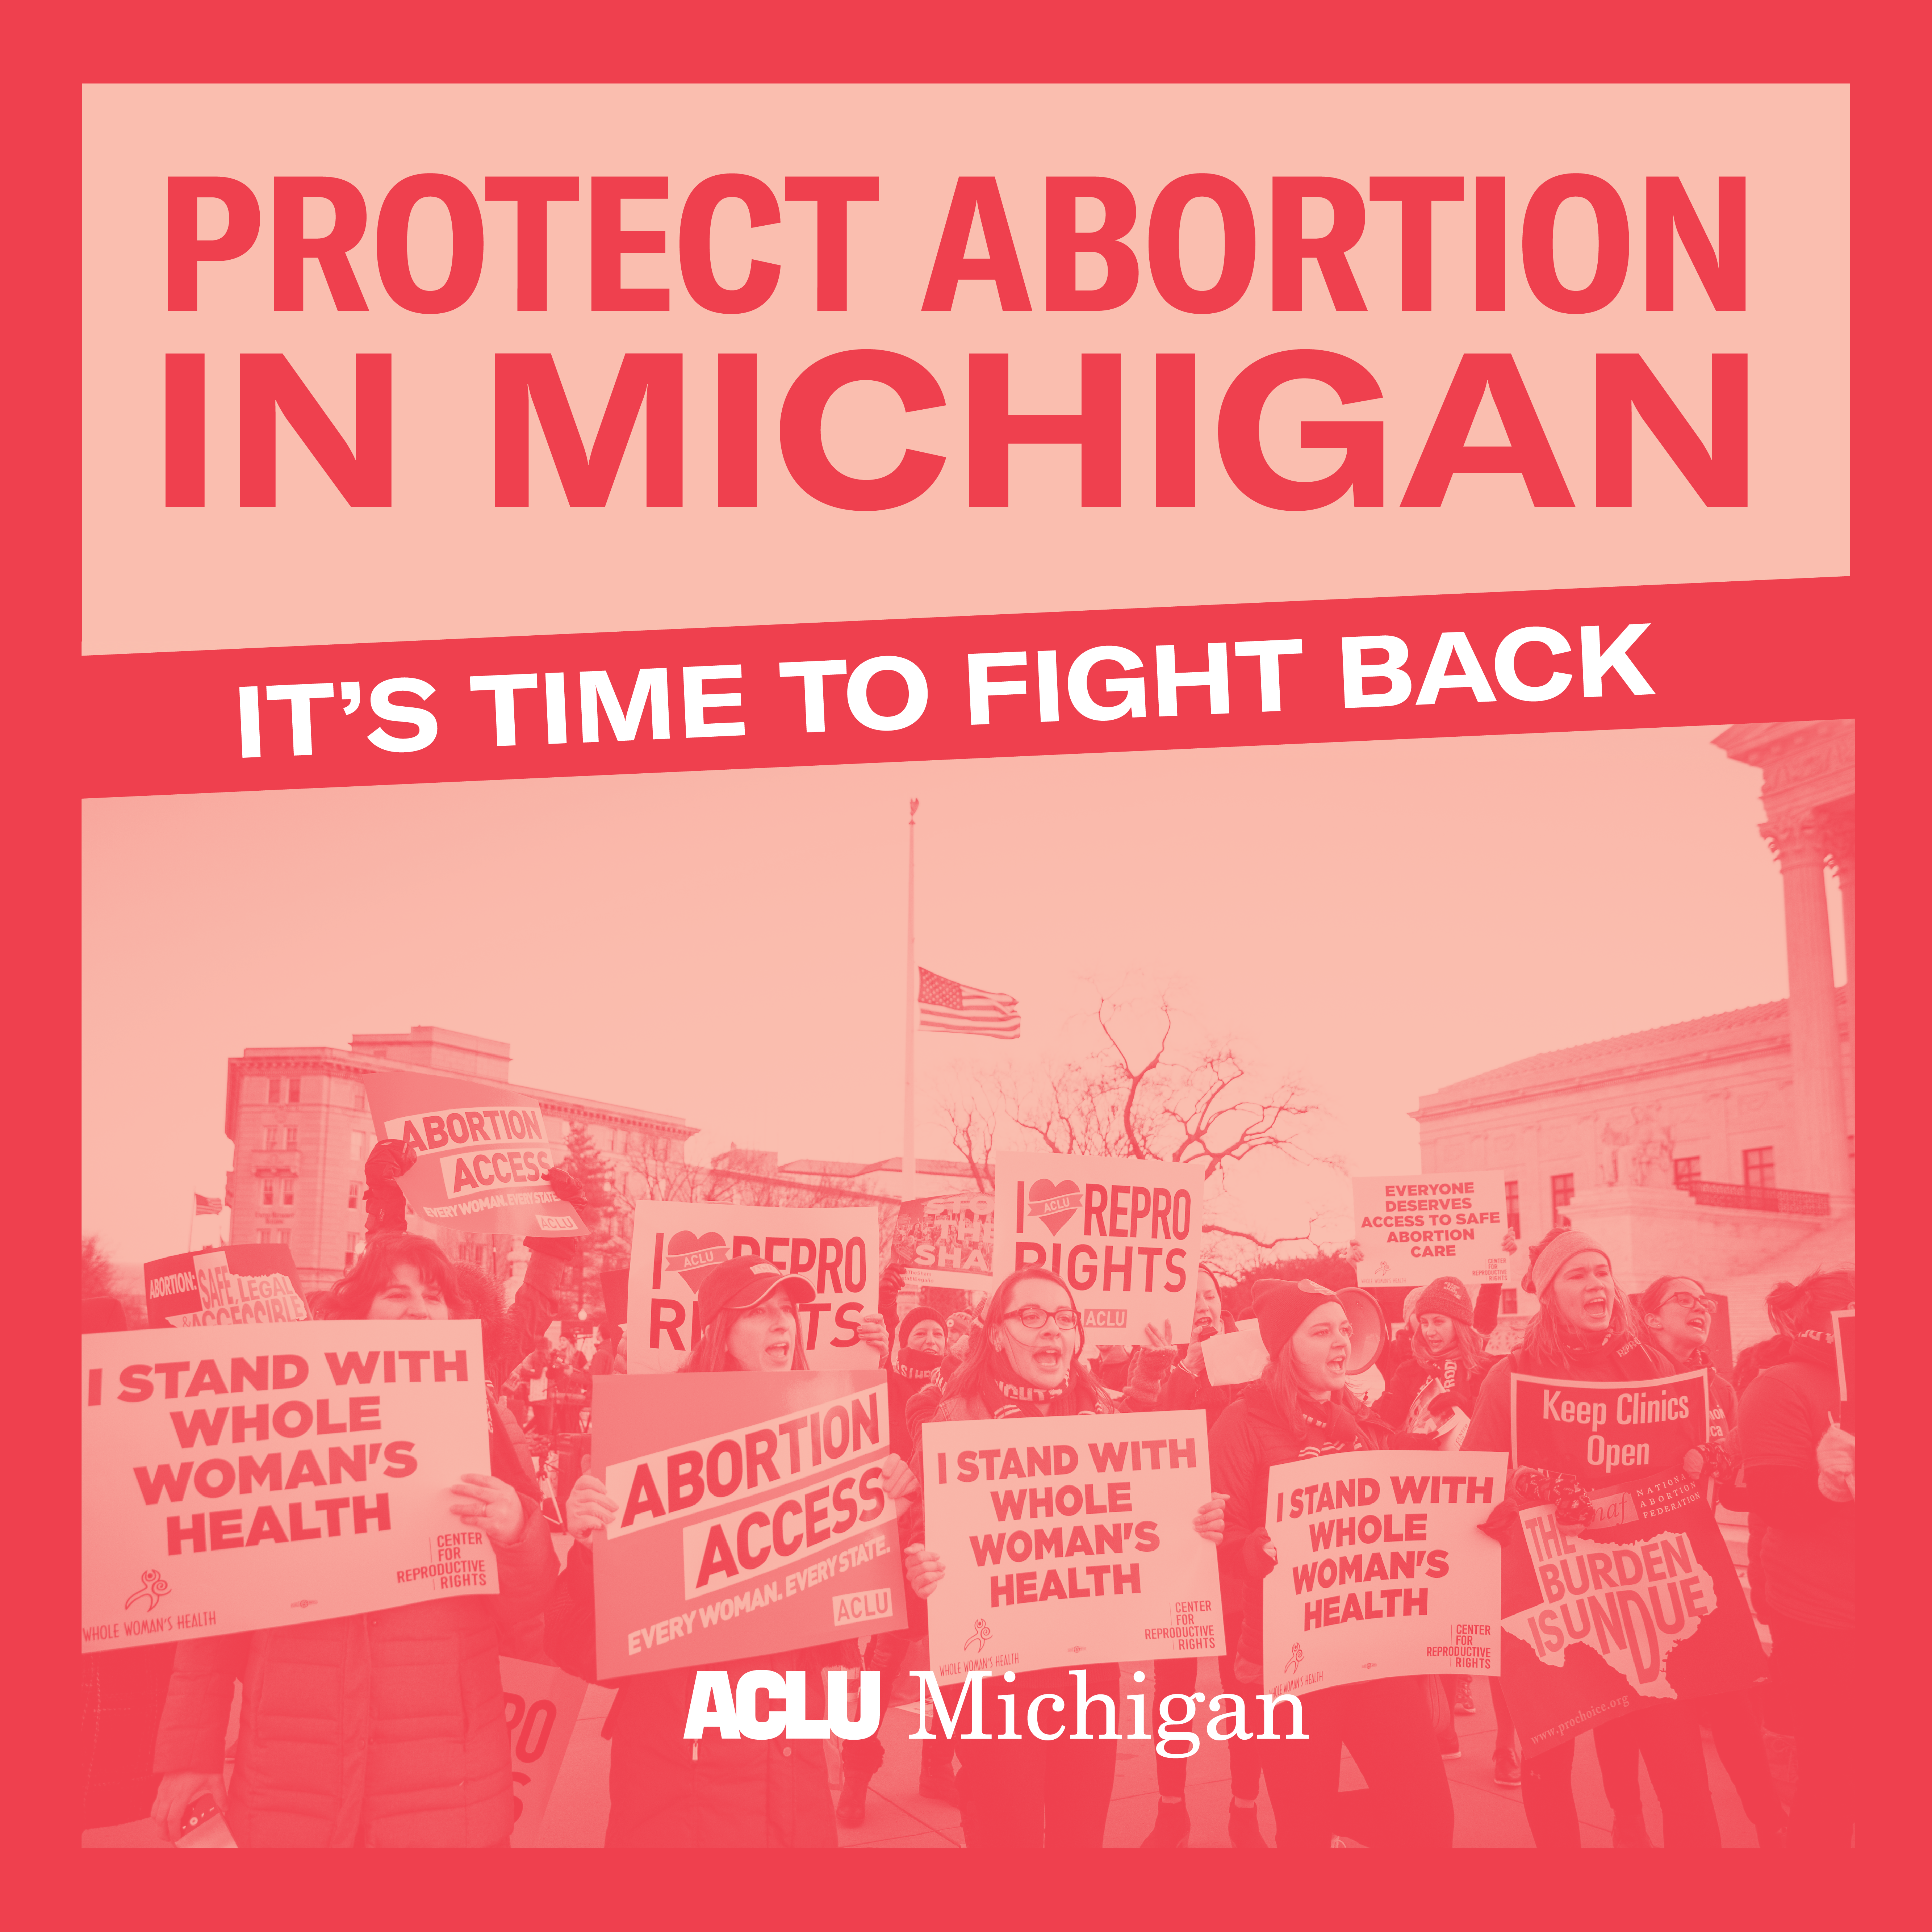 Protect Abortion in Michigan